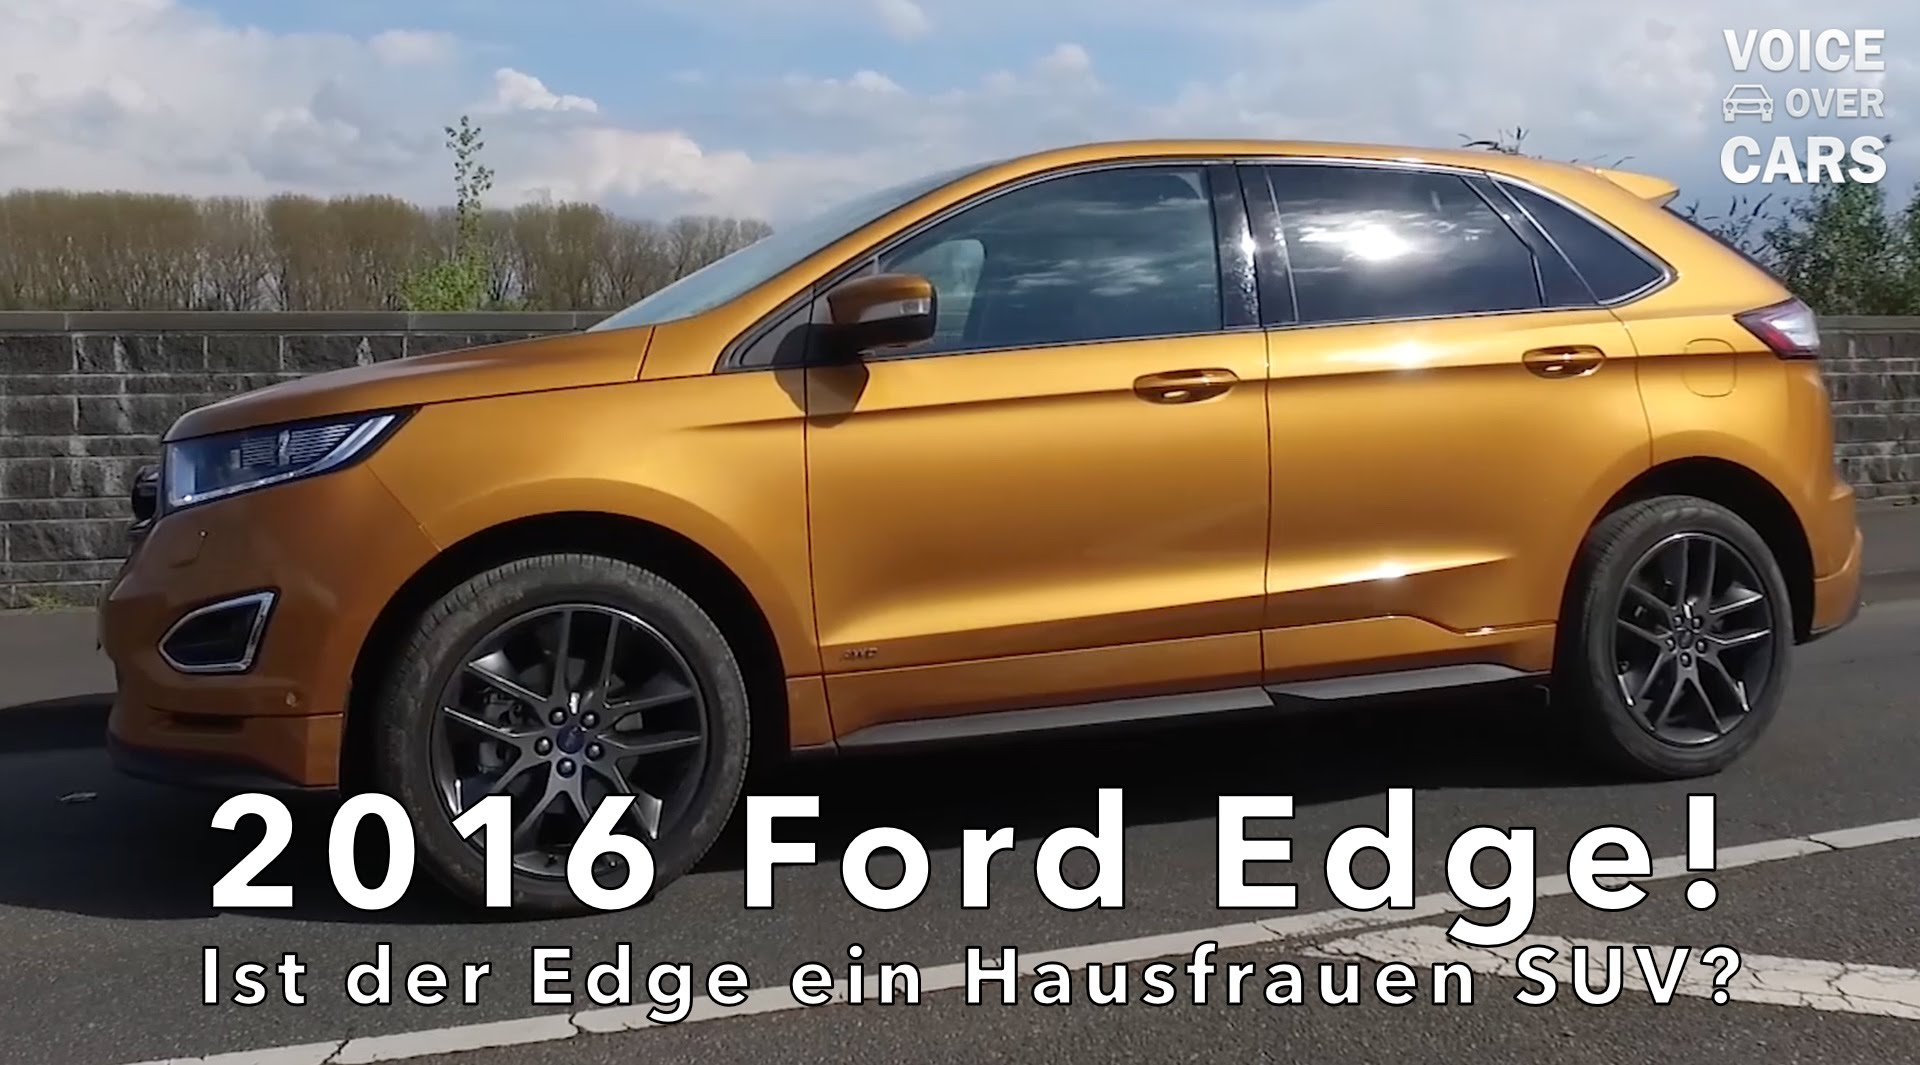 2016 ford edge fakten und informationen voice over. Black Bedroom Furniture Sets. Home Design Ideas